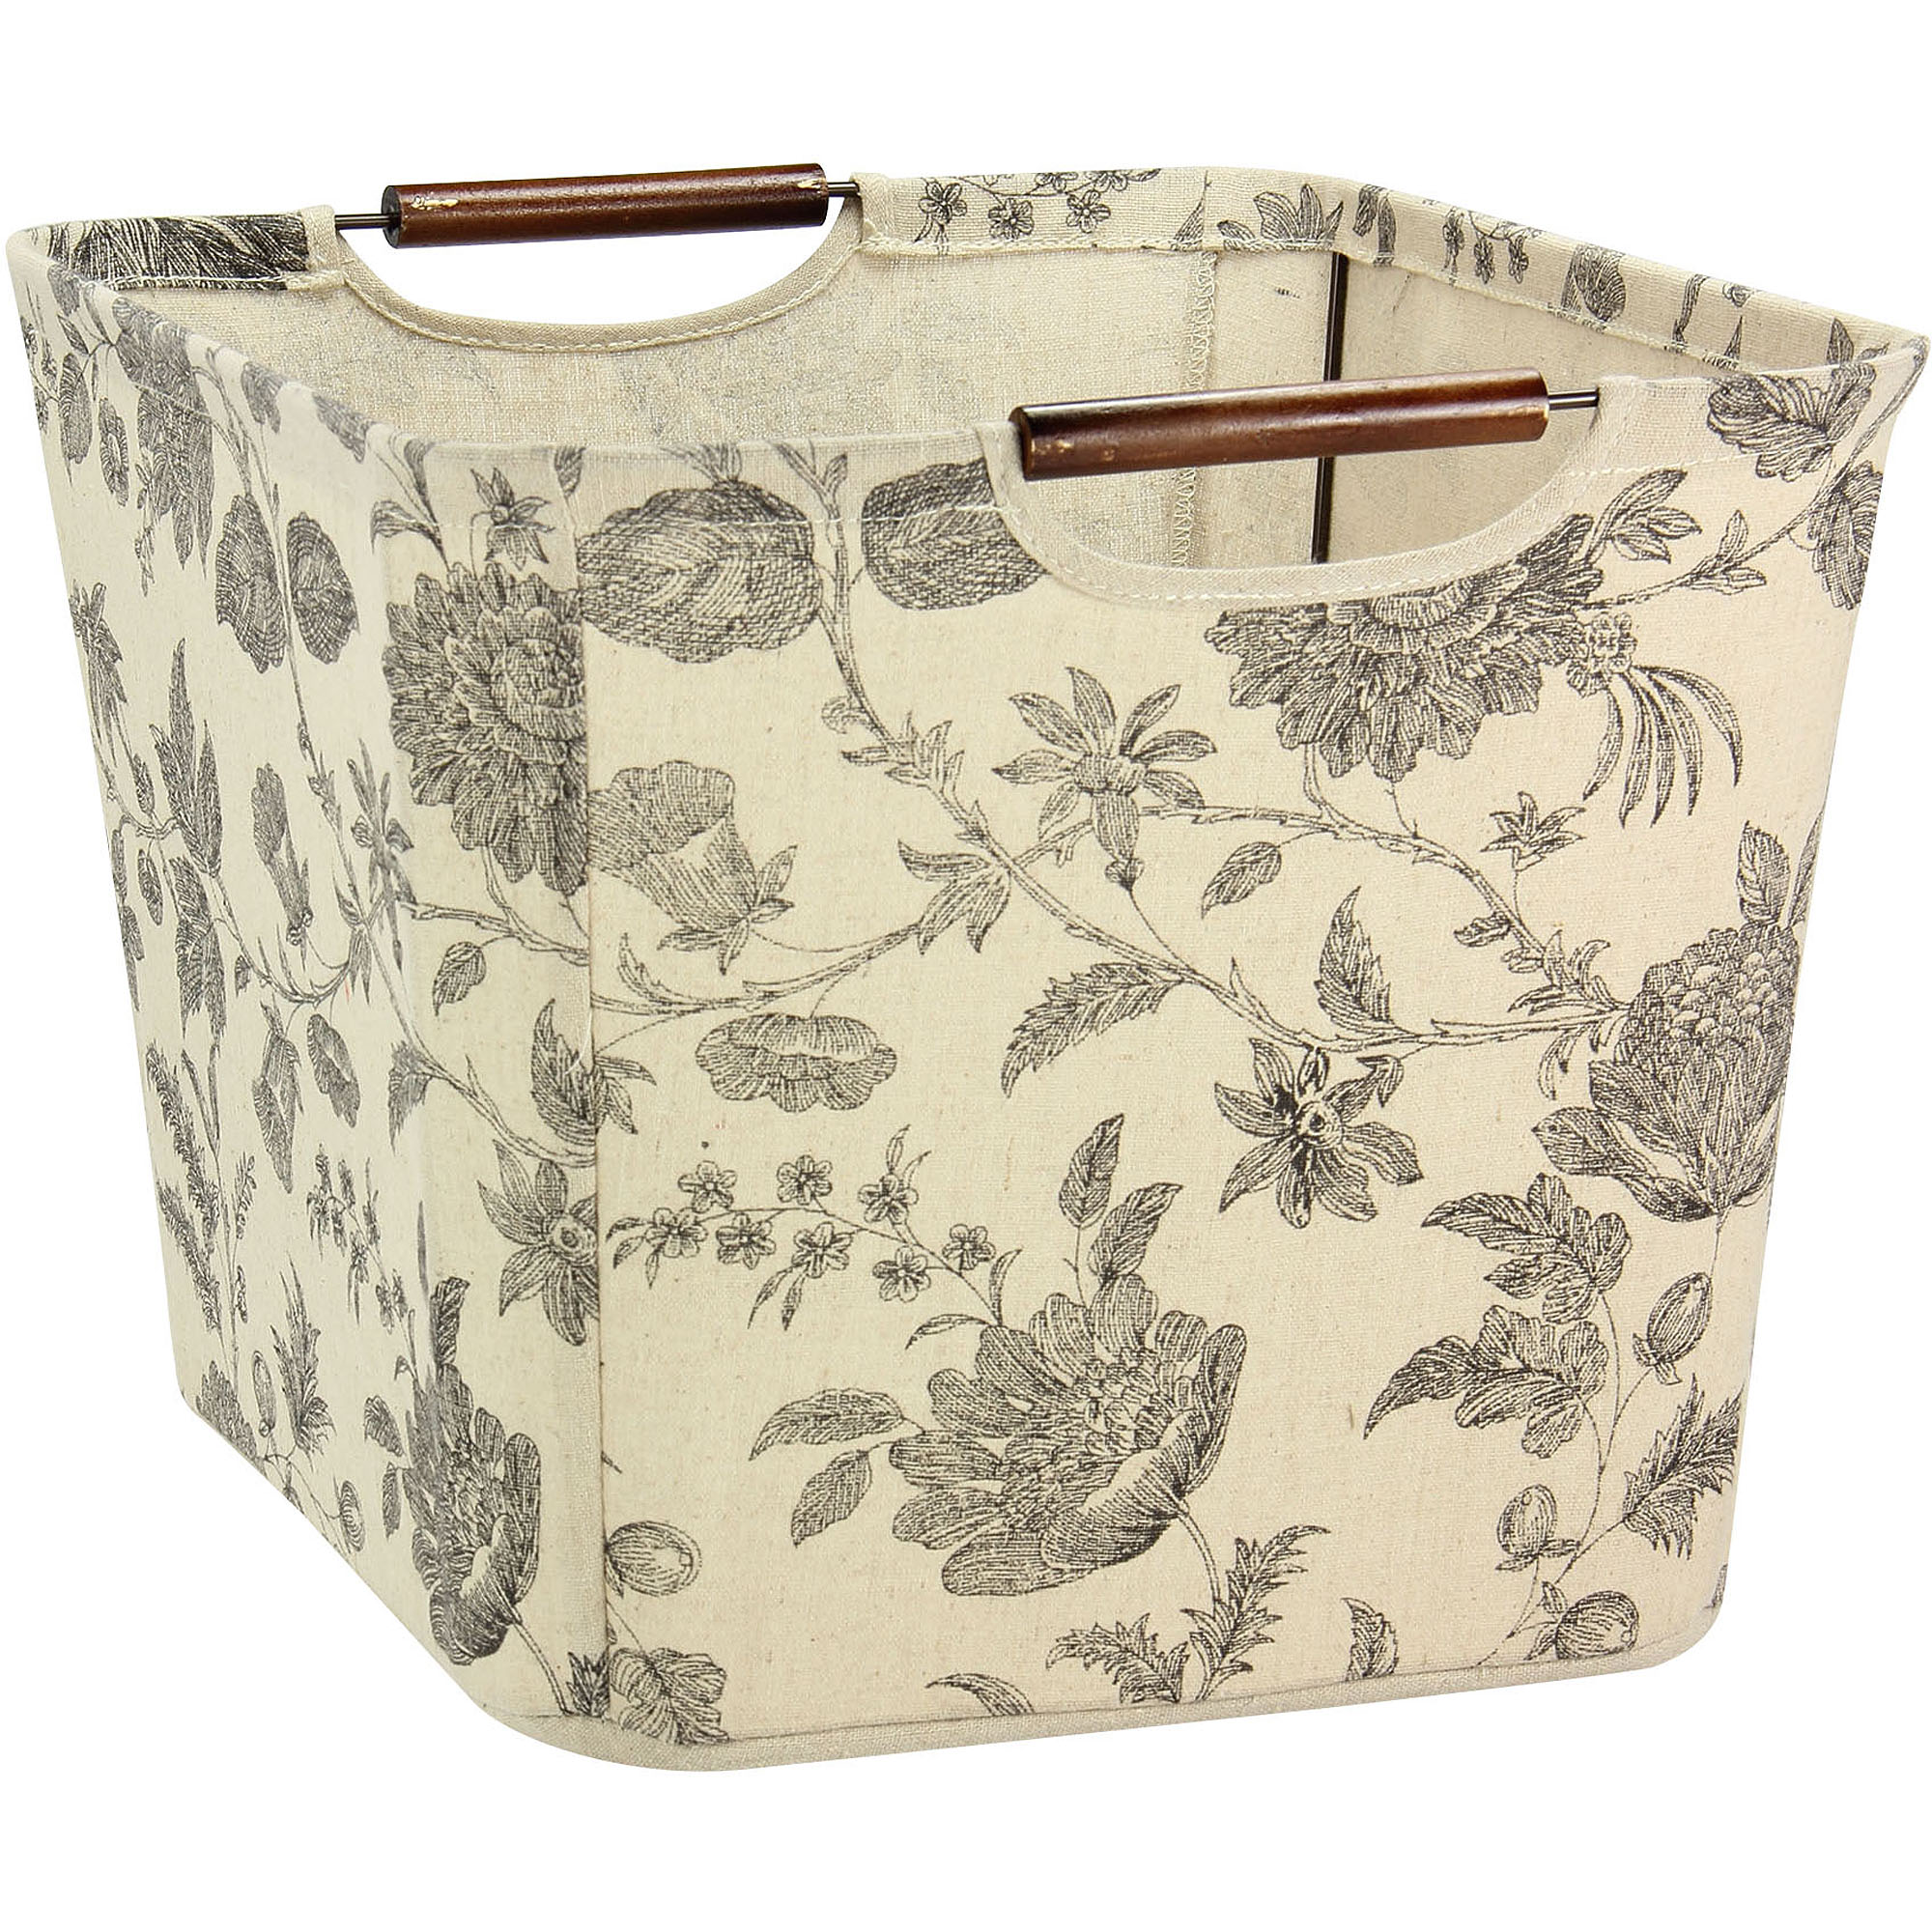 Household Essentials Medium Tapered Storage Bin with Wood Handles, Floral by Household Essentials